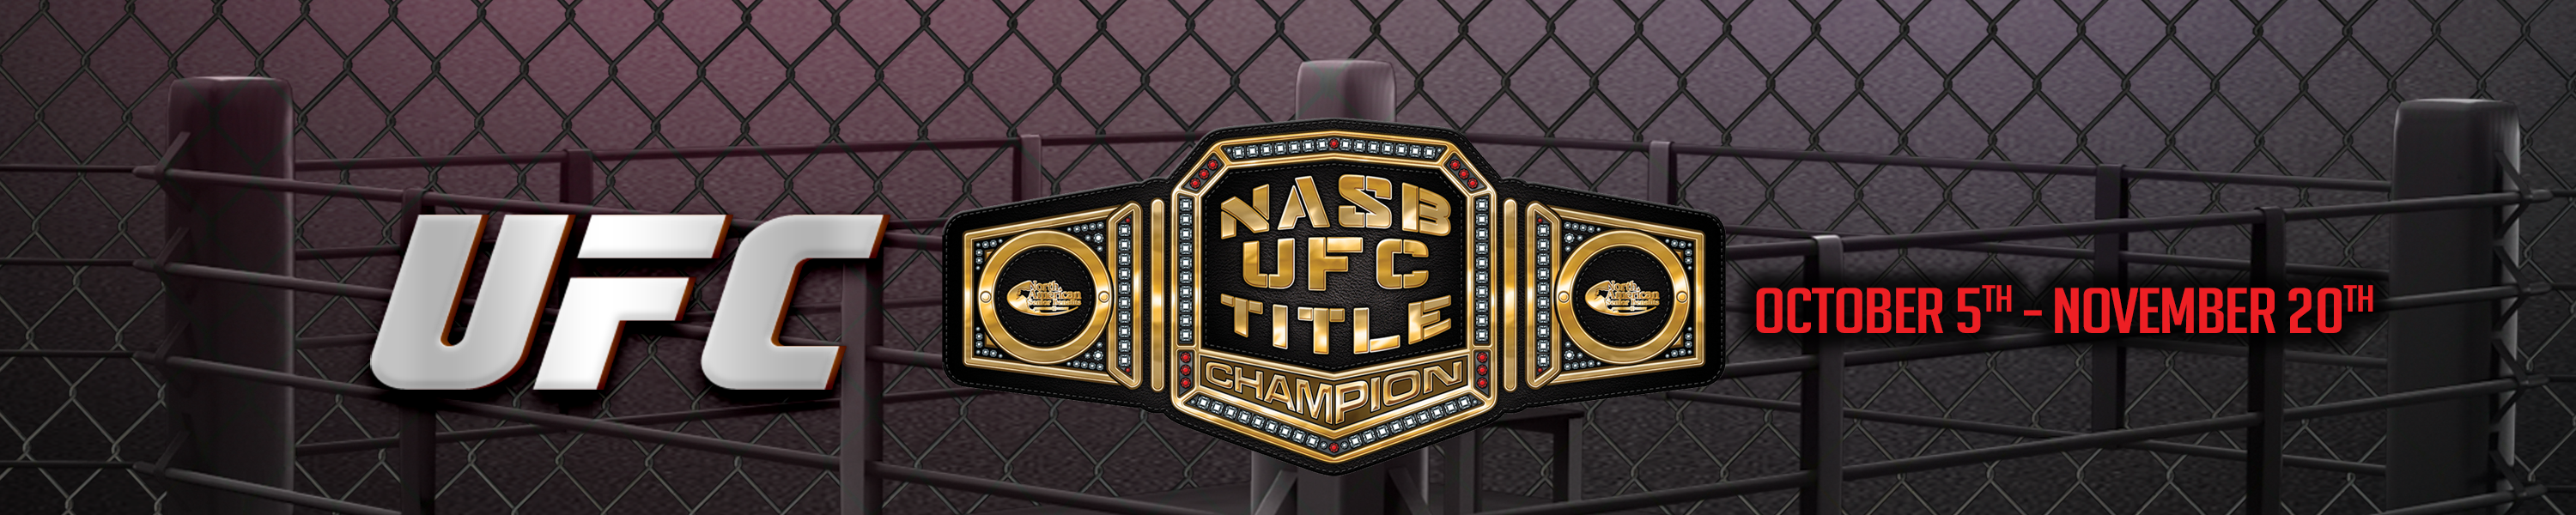 UFC IS LIVE! The Battle For the Belts is On!